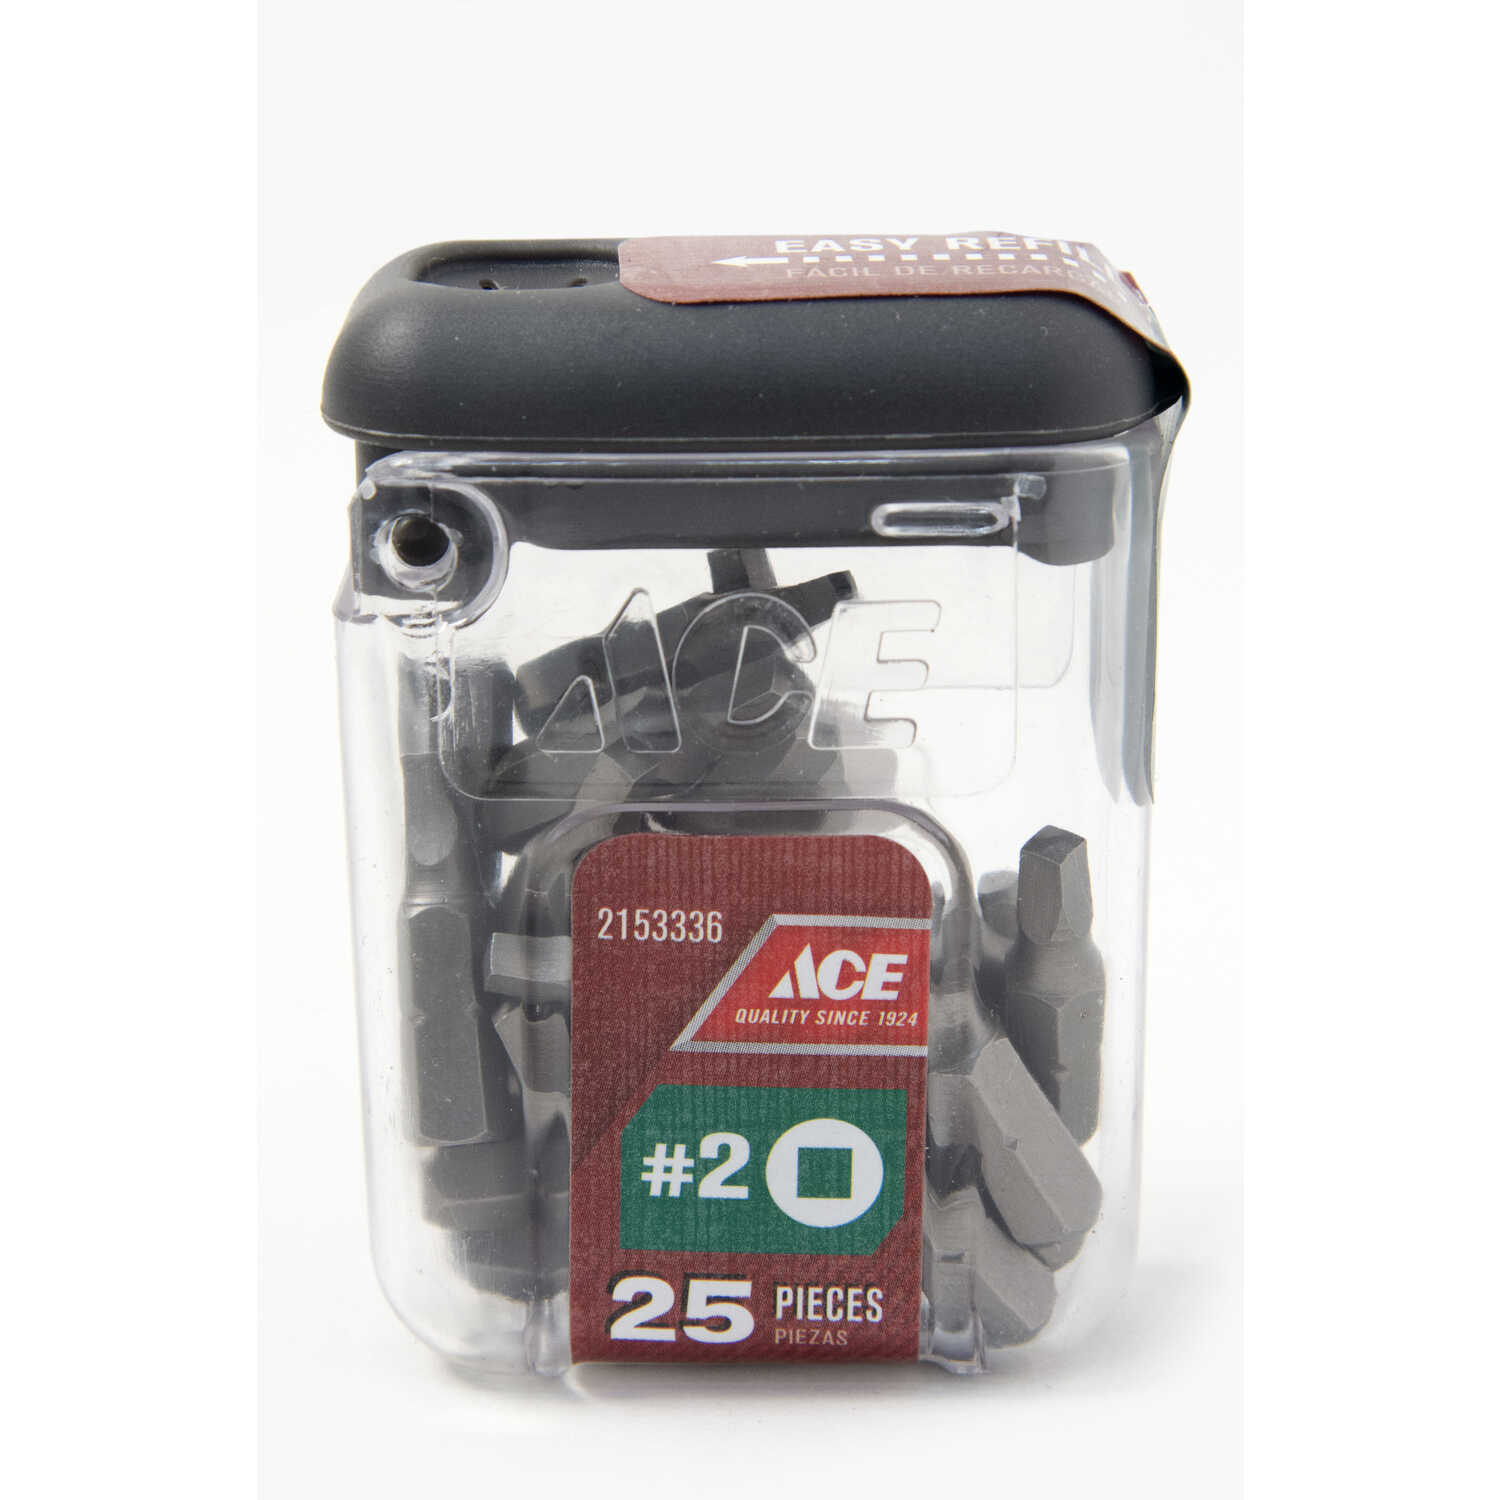 Ace  1 in. L x #2   Square Recess  S2 Tool Steel  Hex Shank  25 pc. Insert Bit  1/4 in.